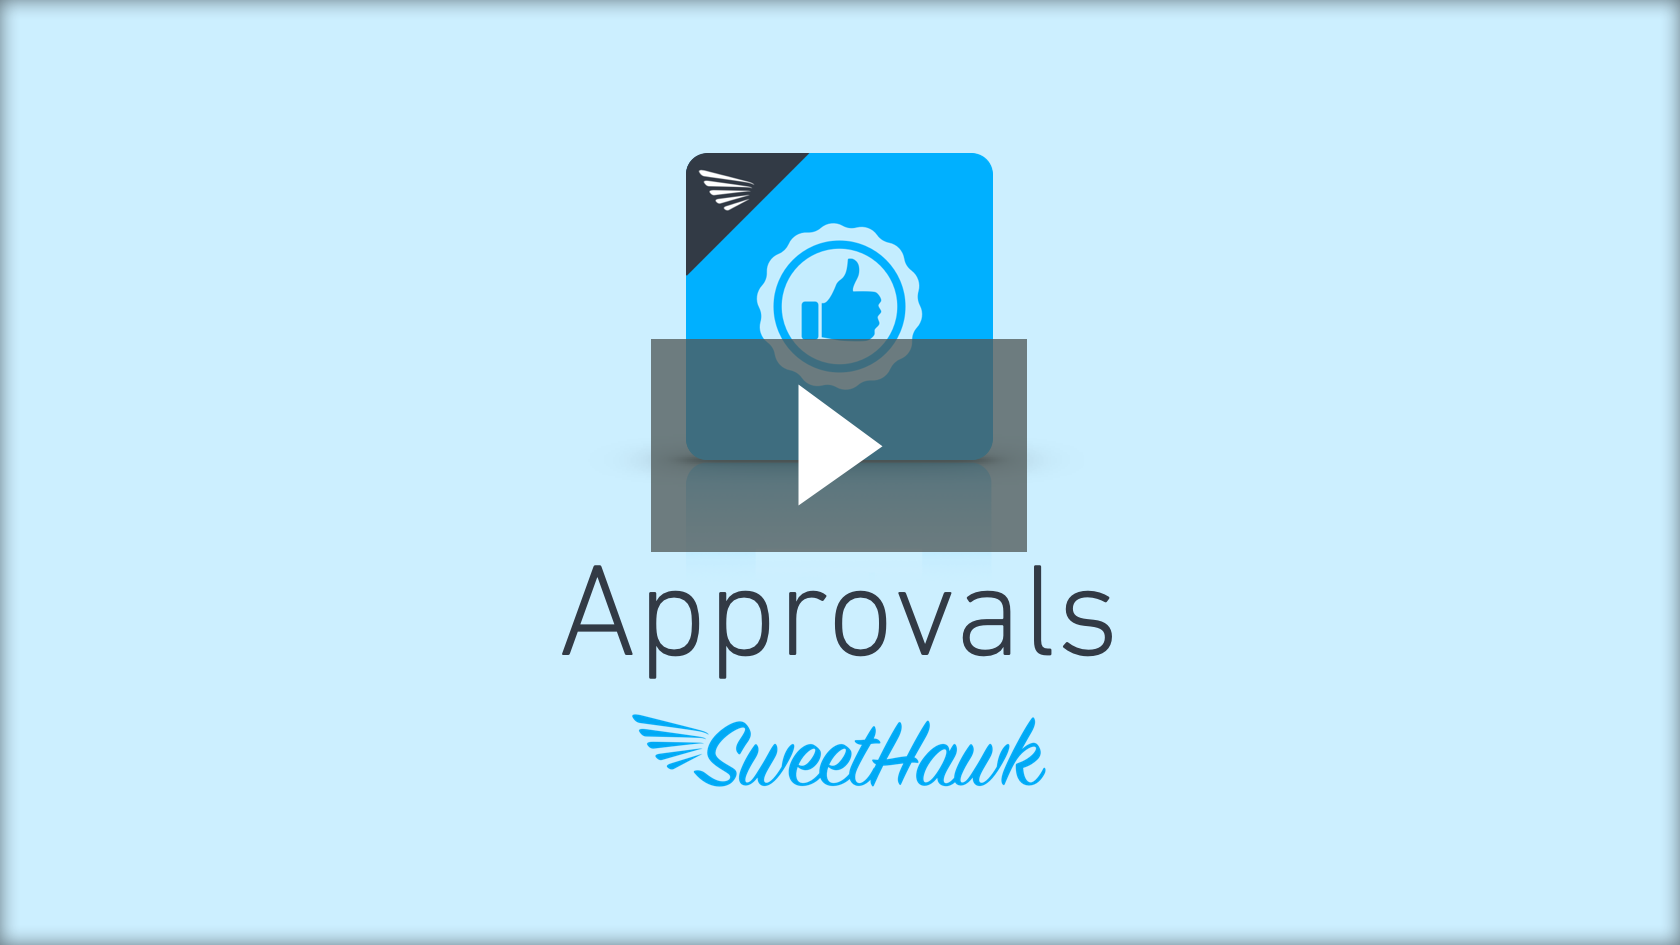 Watch the Approvals app video